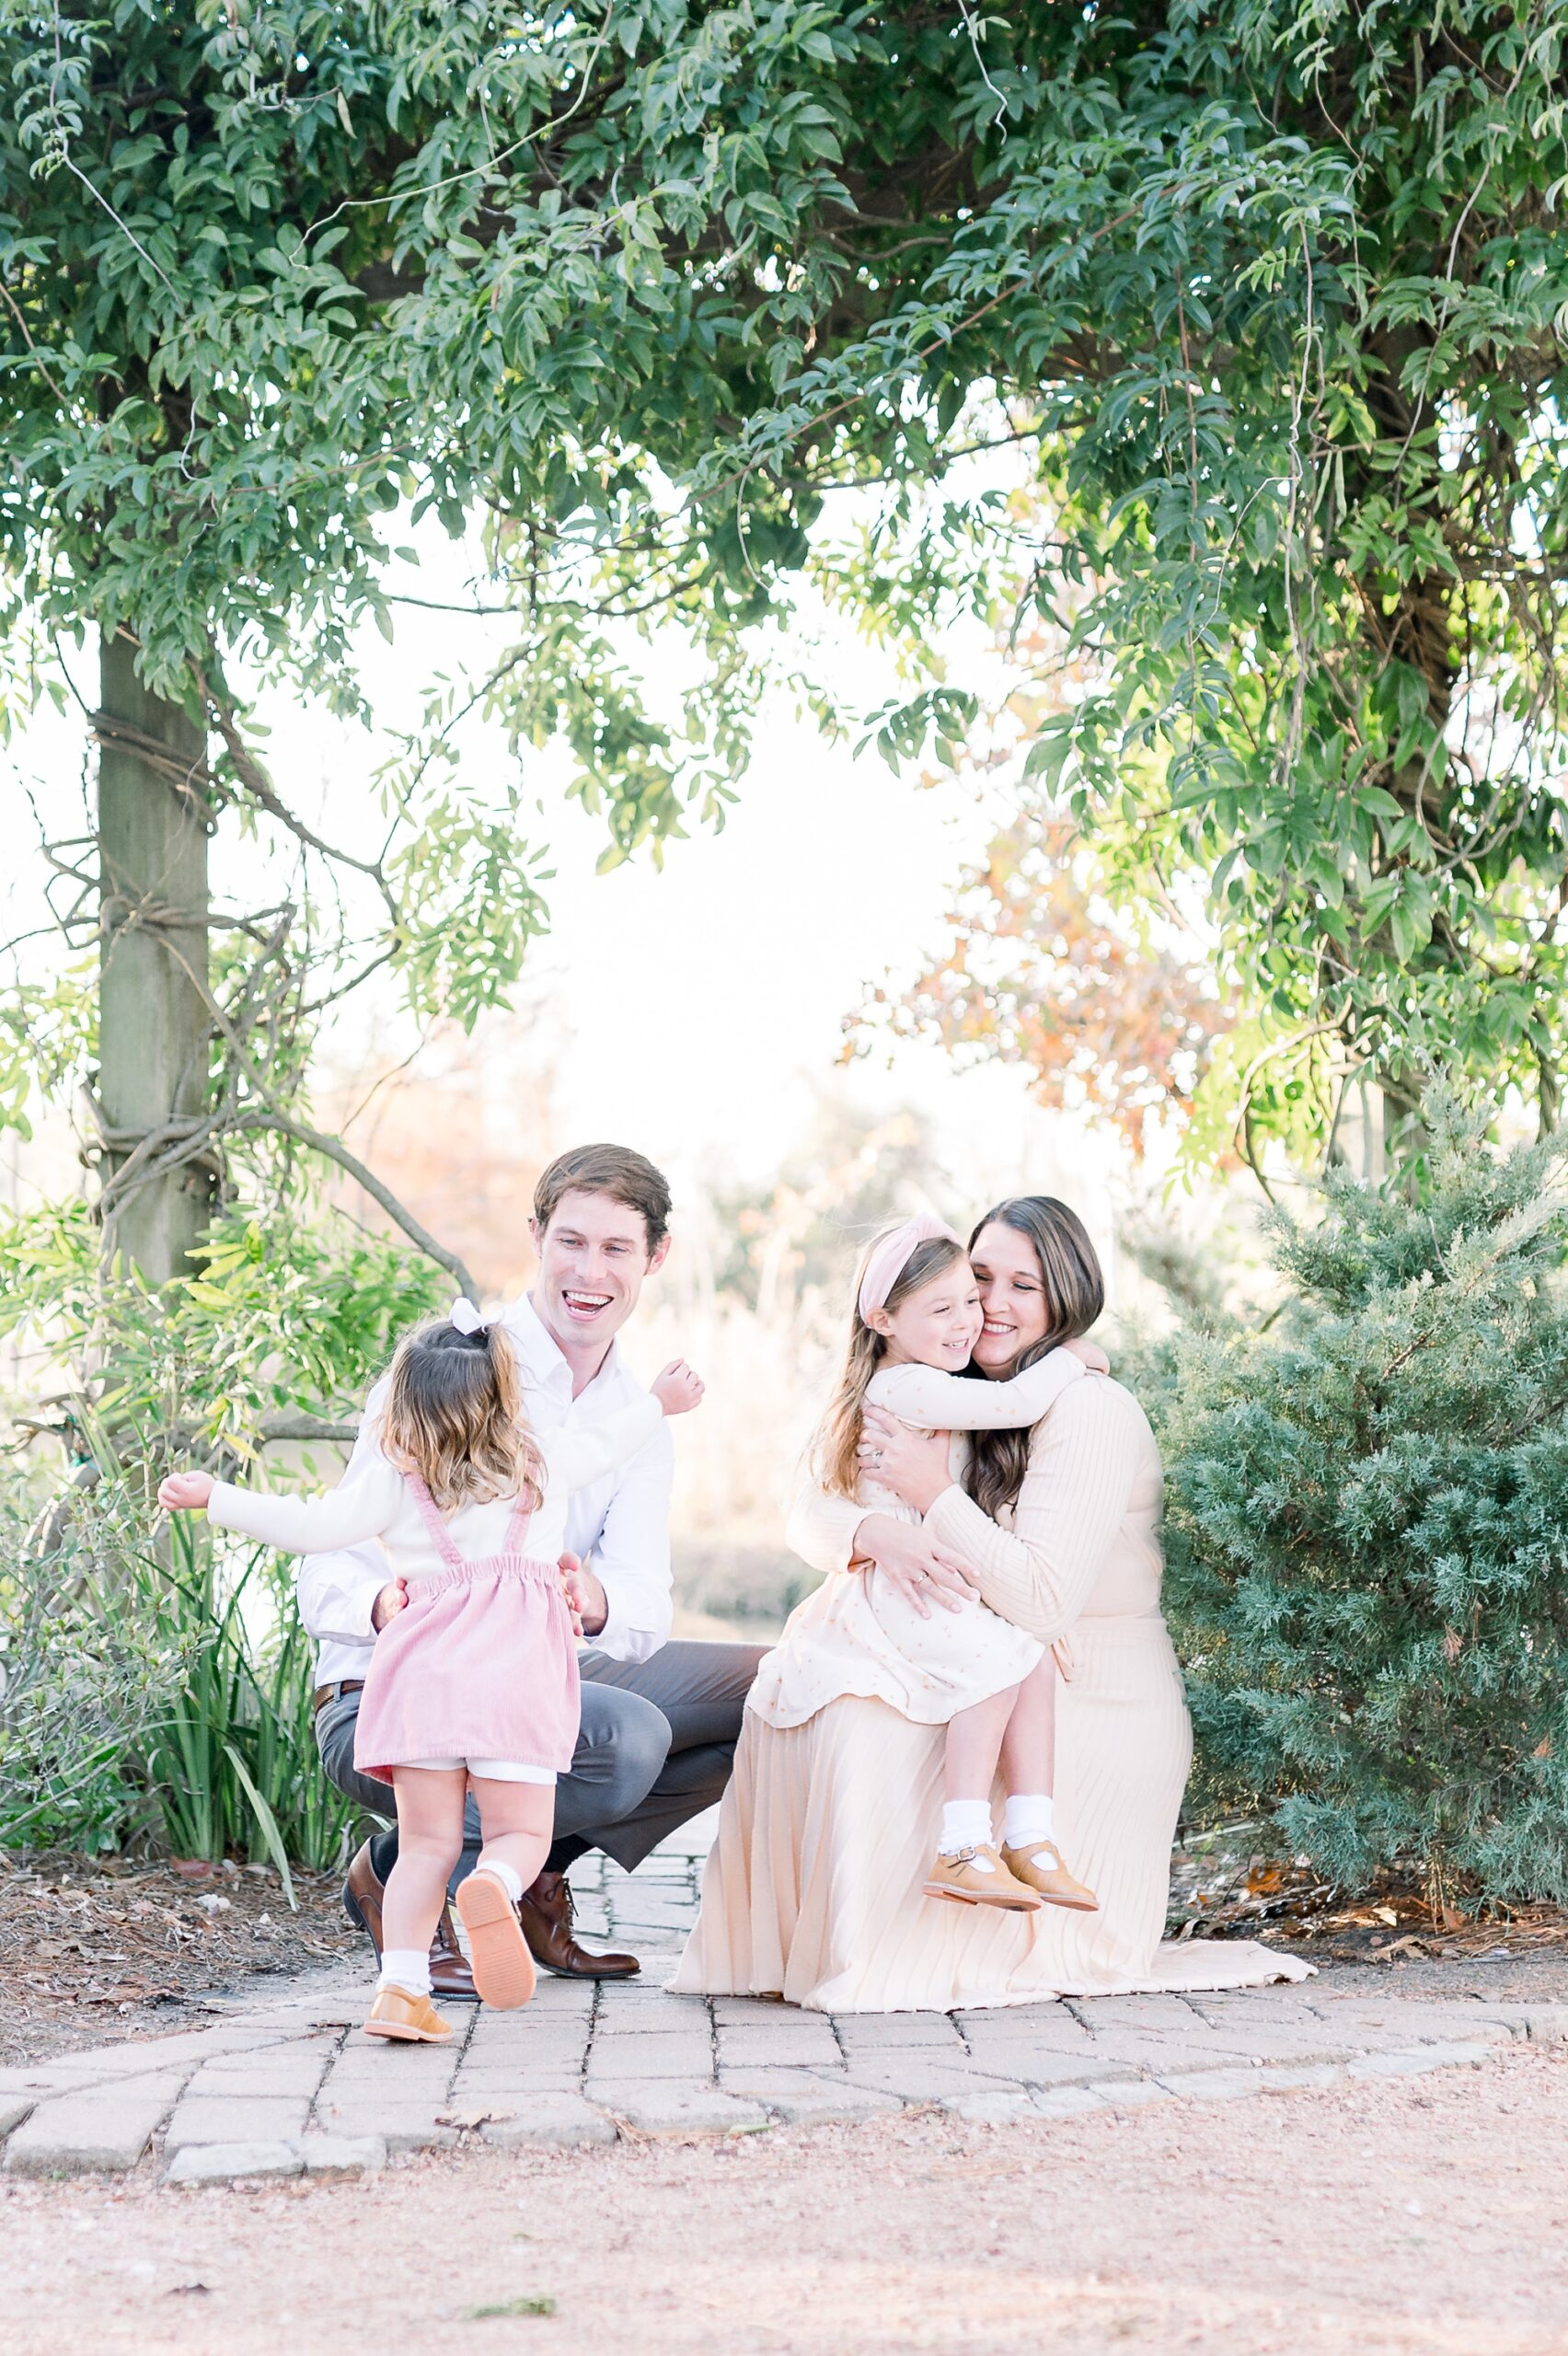 Family session in park with two toddlers in McKinney, TX. Photo by Aimee Hamilton Photography.